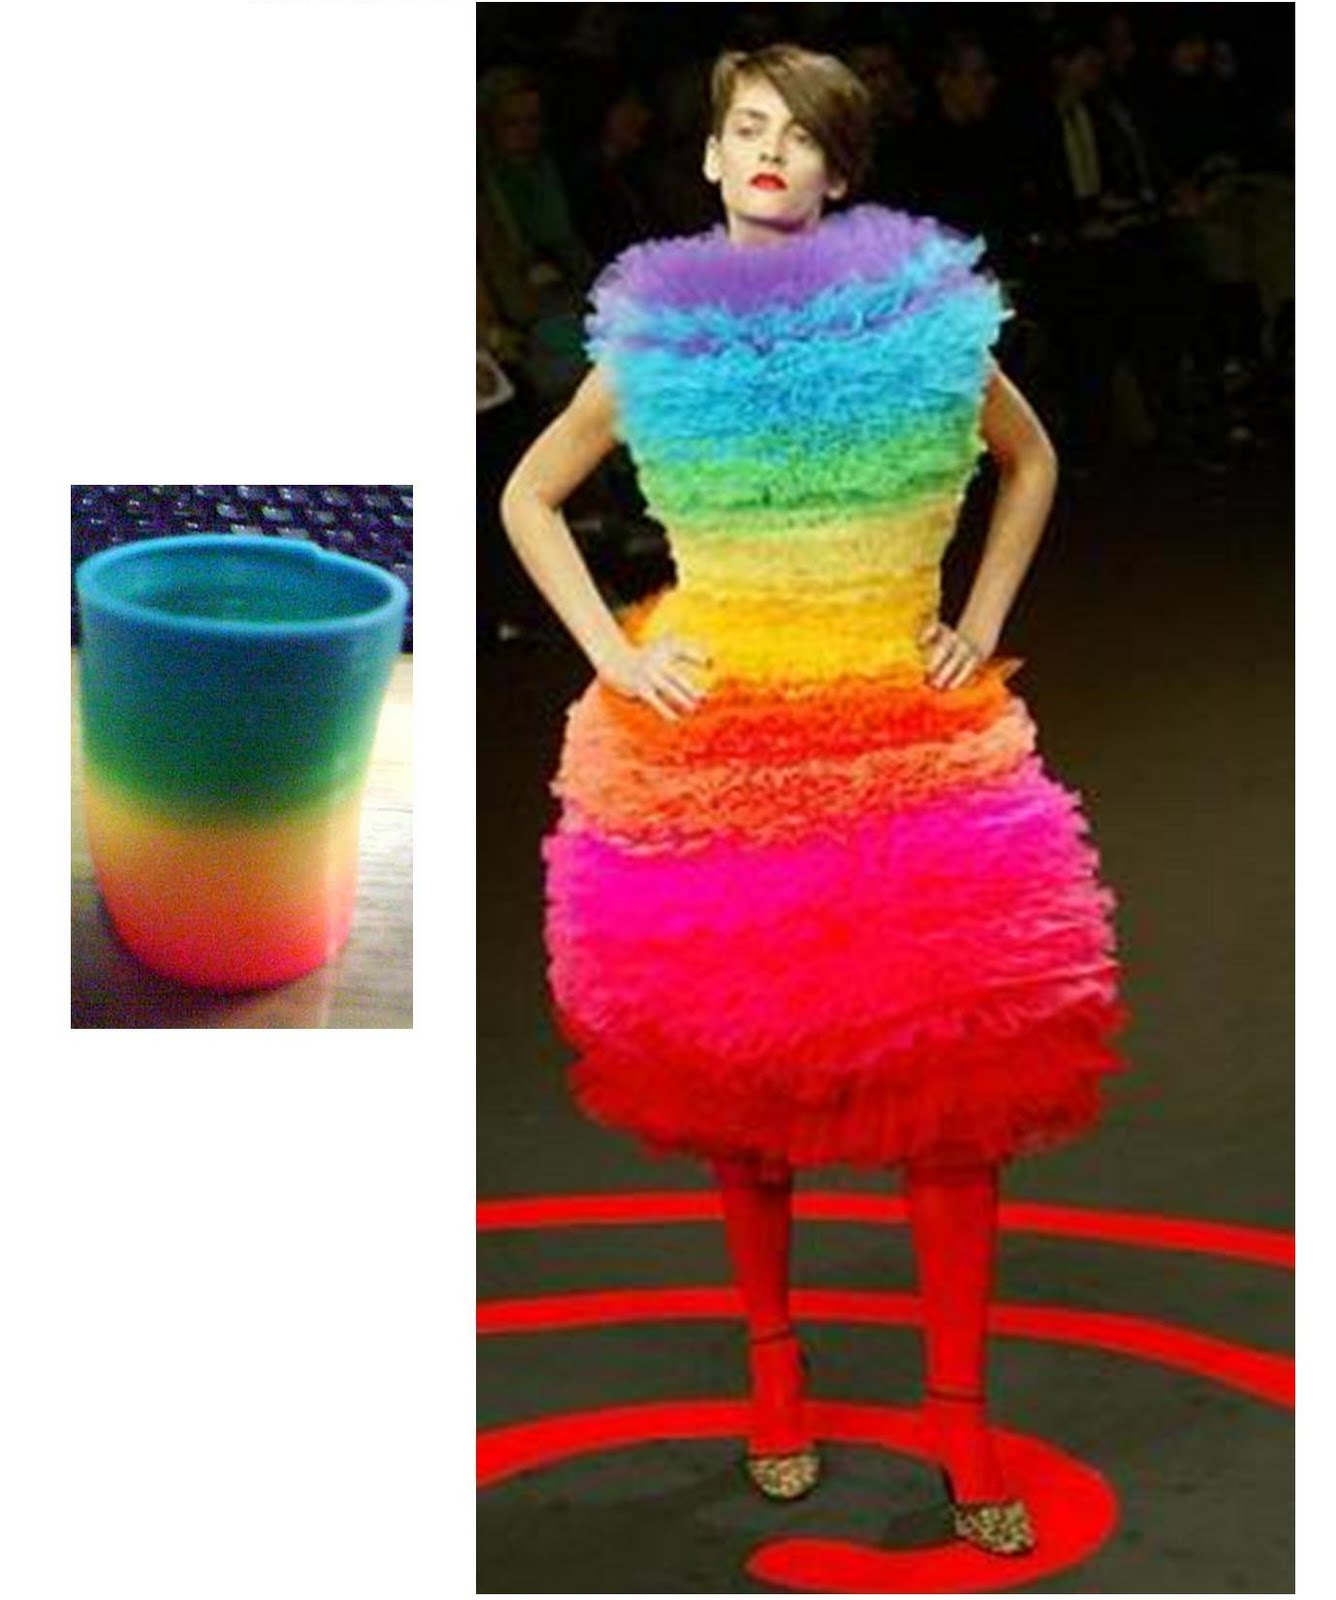 Ugly dresses gallery wedding dress decoration and refrence ugly dresses gallery wedding dress decoration and refrence ugly dresses gallery wedding dress decoration and refrence junglespirit Image collections